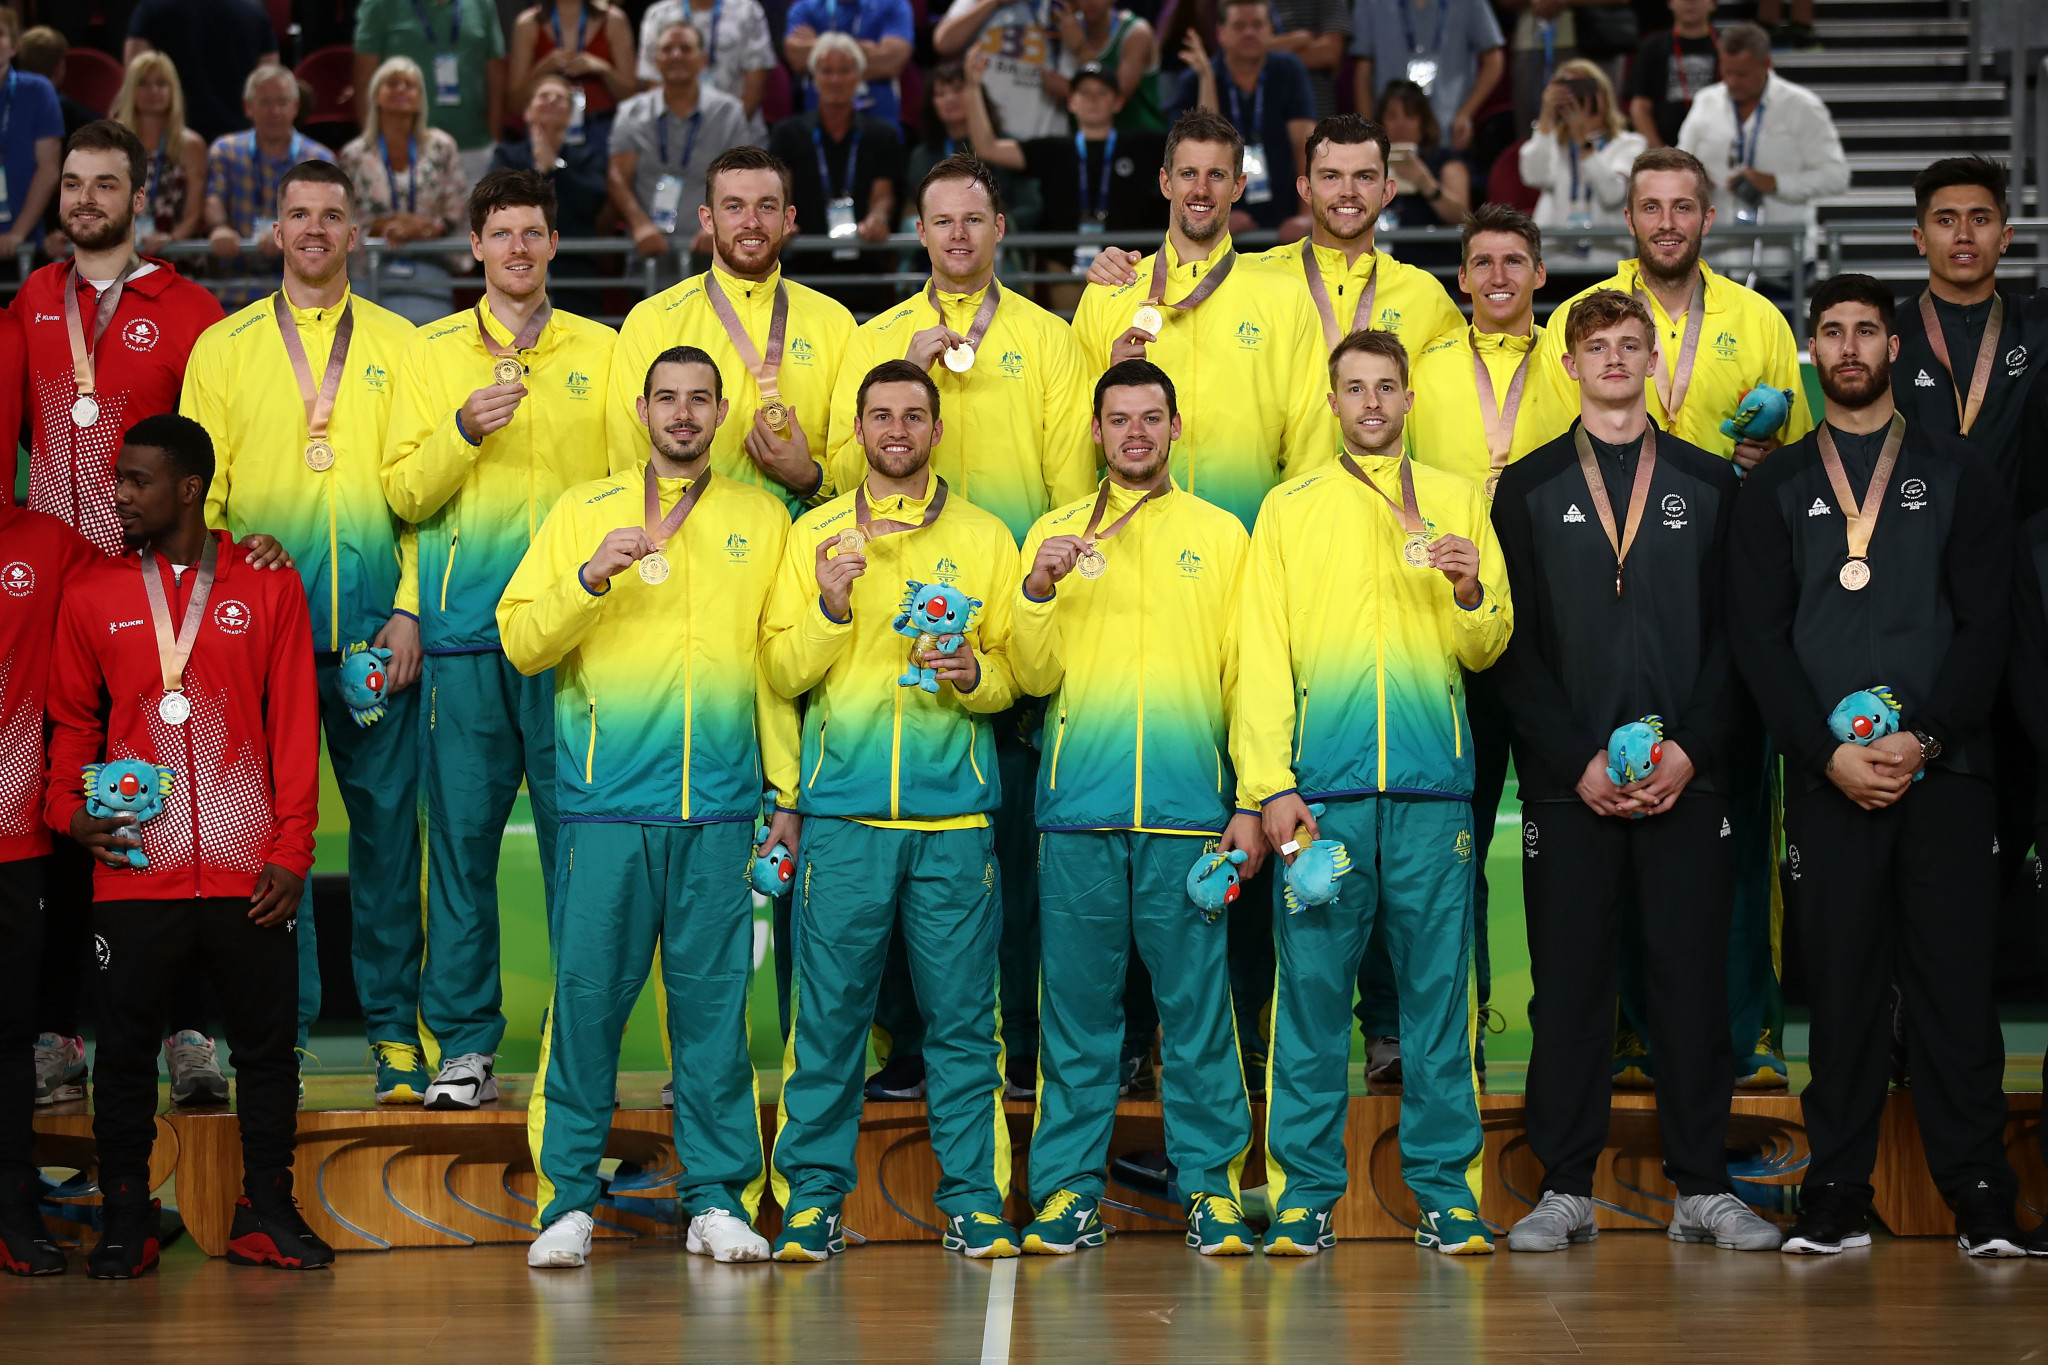 Australia clinch men's basketball gold by overcoming Canada